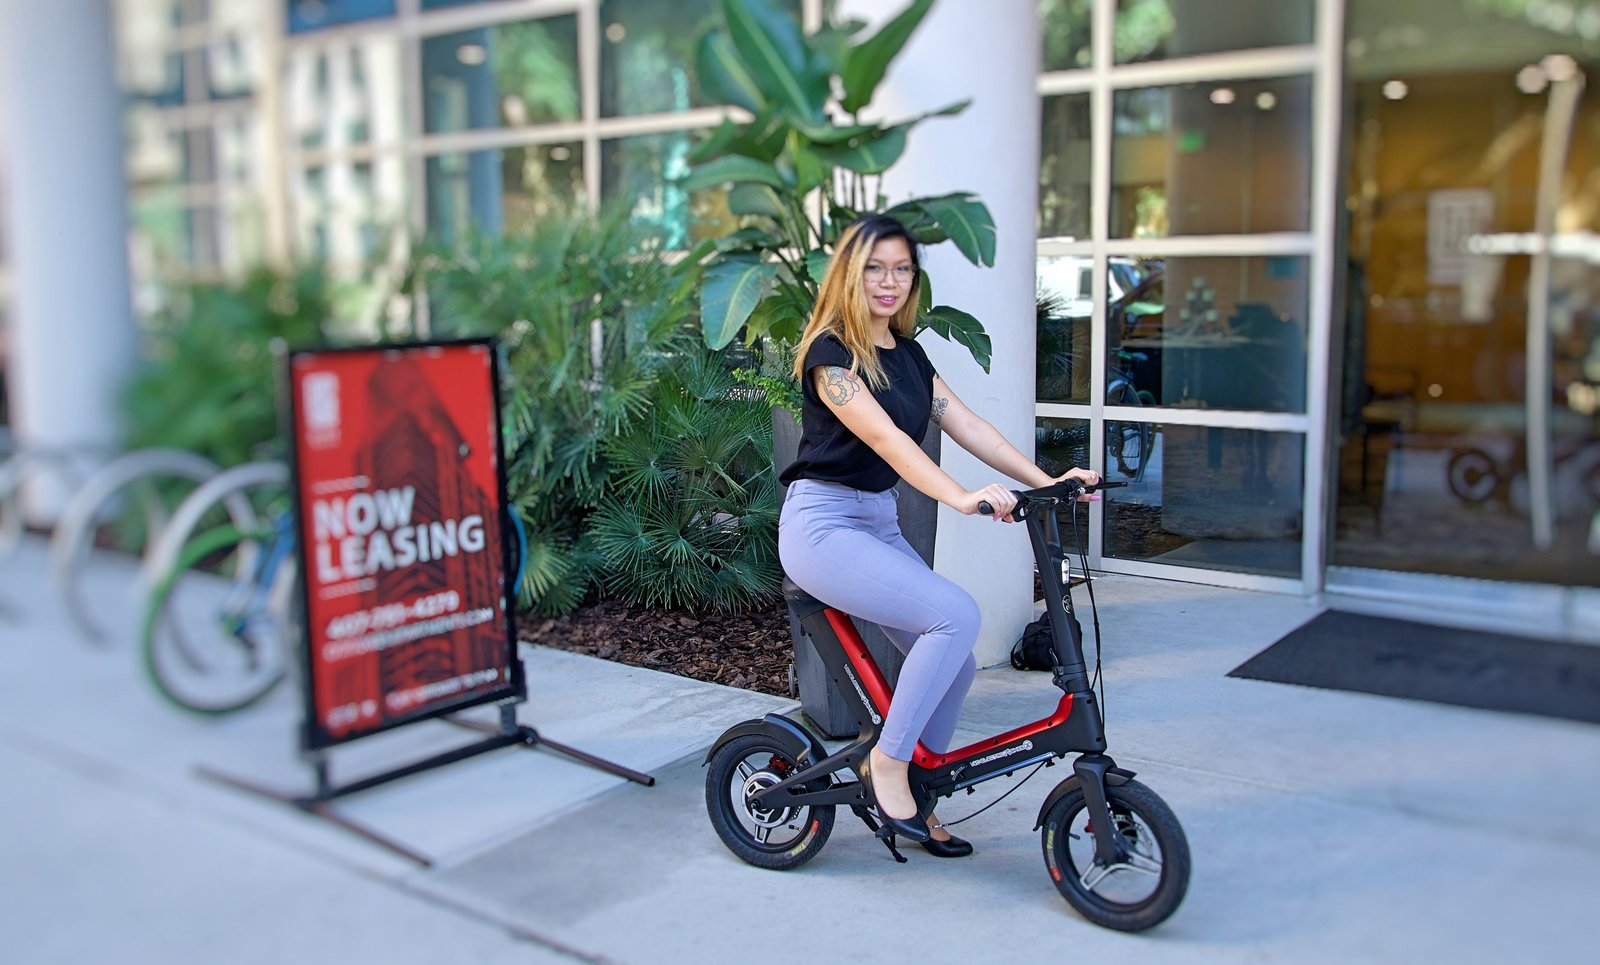 Lady on Red Go-Bike M3 in front of leasing office